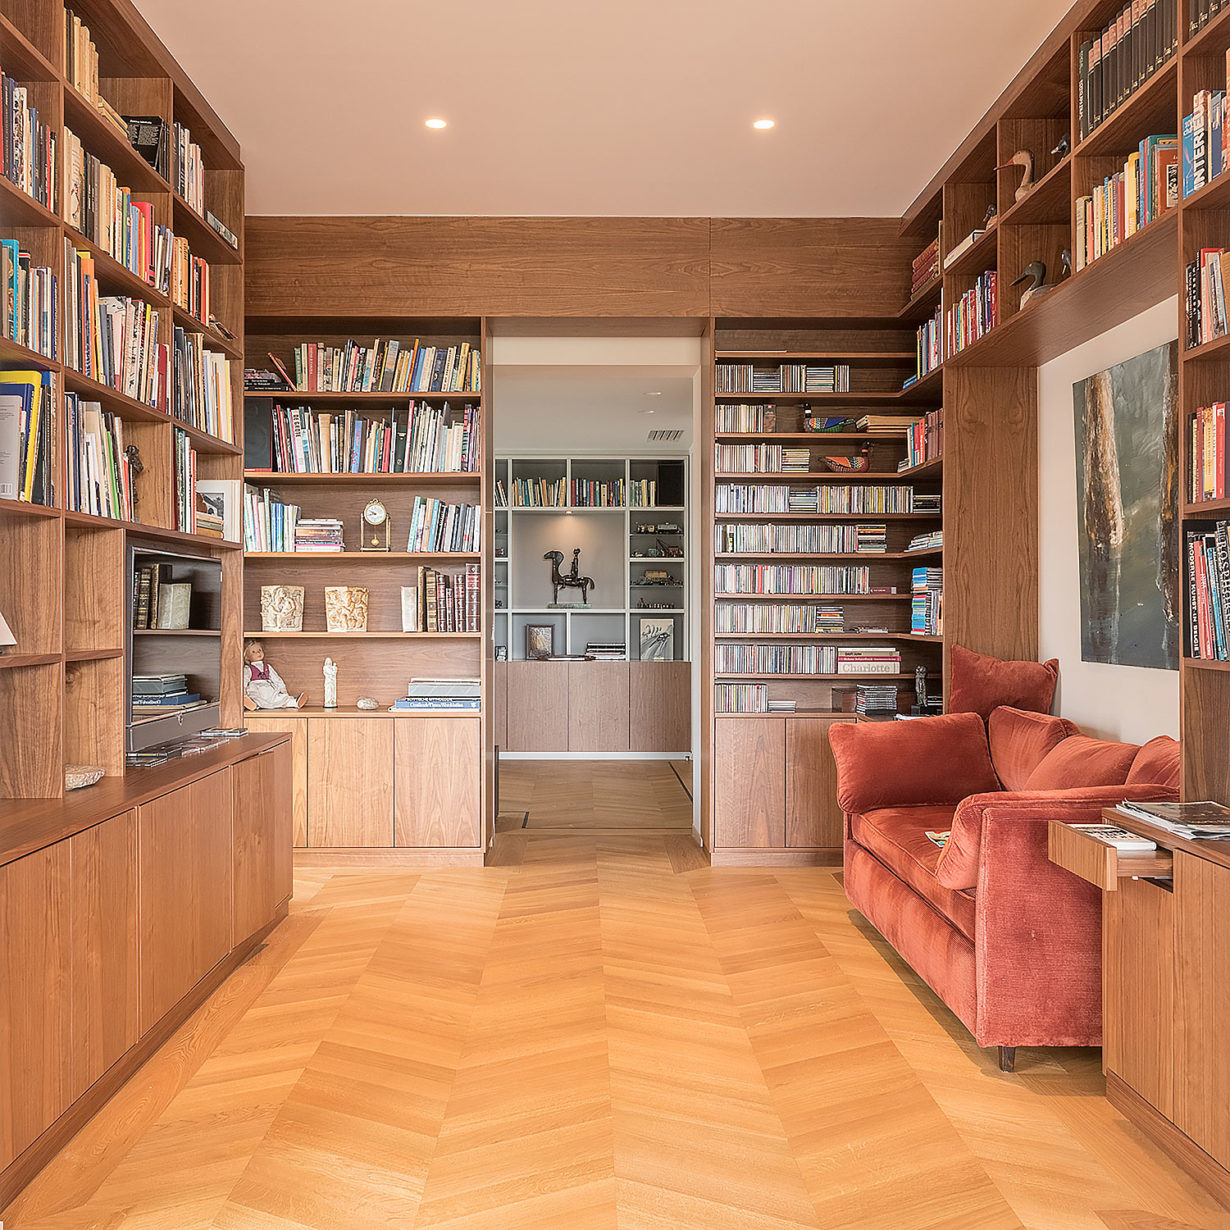 Coen Gorter Interiors by Lotte Deckers - Project 4 - Foto 1 @2x